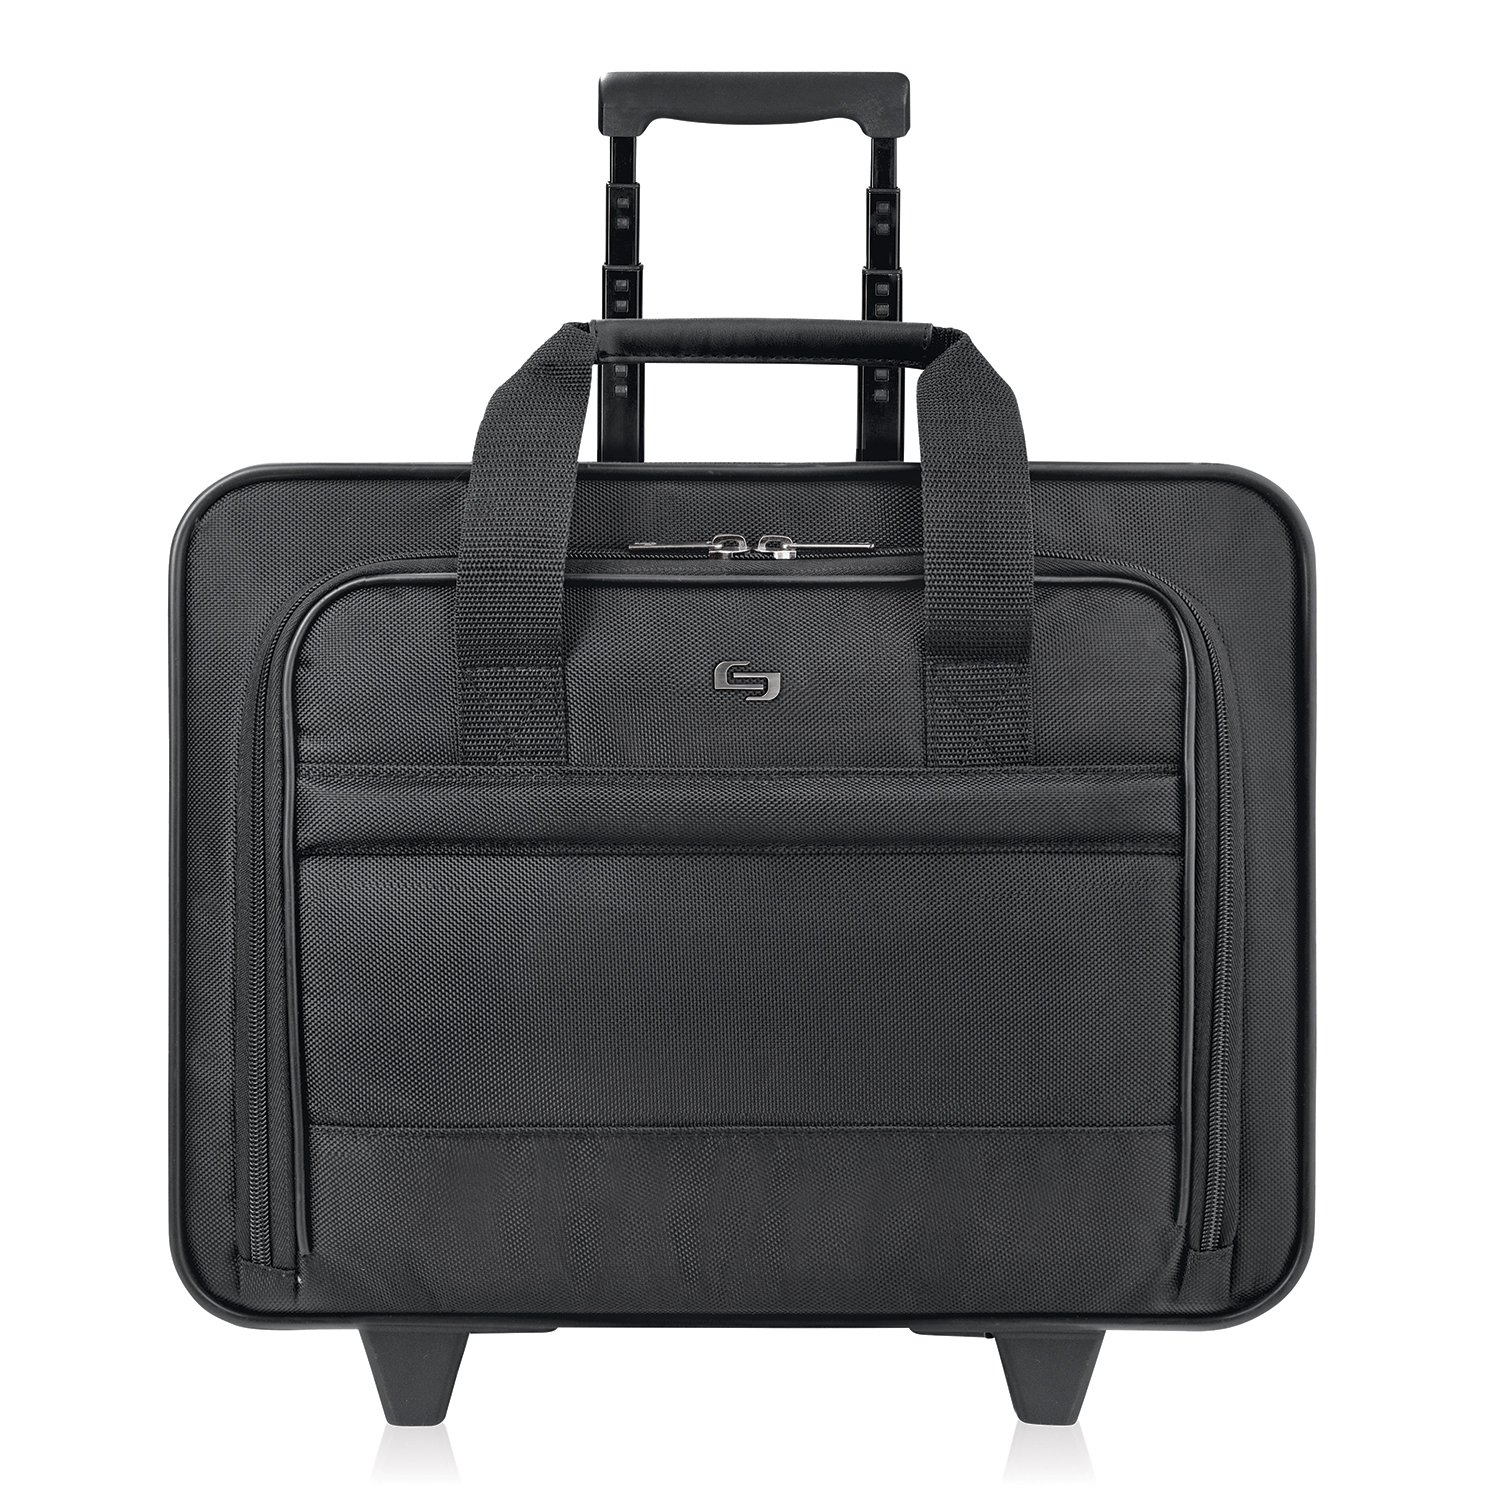 Solo New York Carnegie Rolling Laptop Bag.  Slim, Compact Design Rolling Case for Women and Men. Fits up to 15.6 inch laptop - Black by SOLO